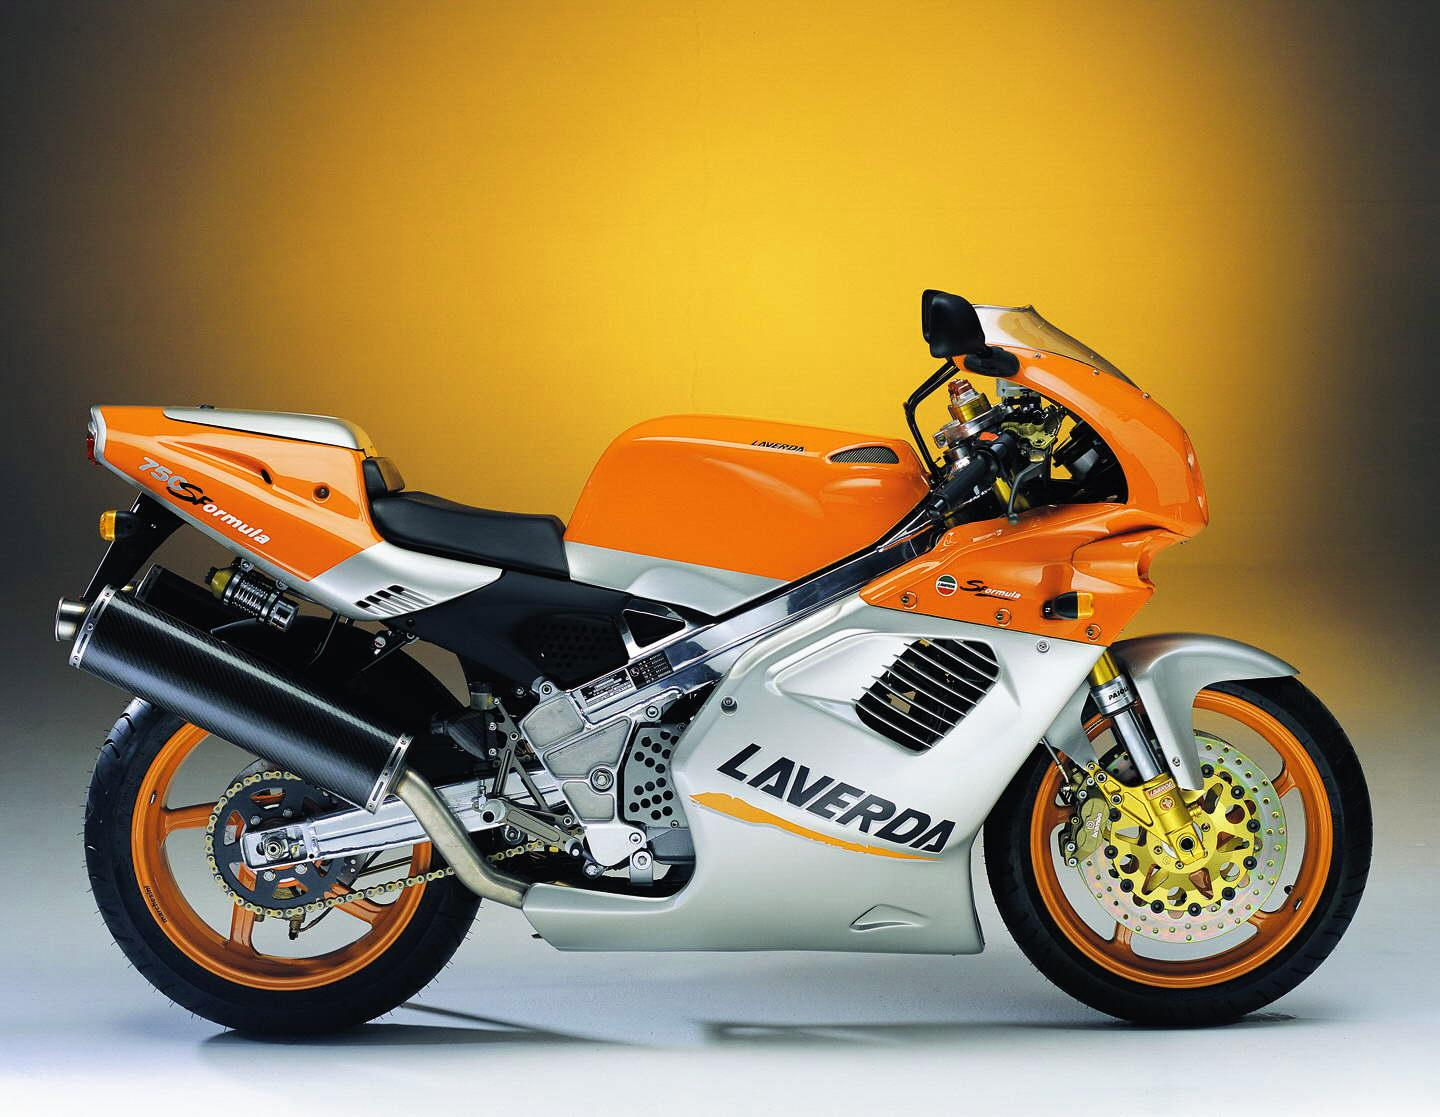 Laverda wallpapers #144335